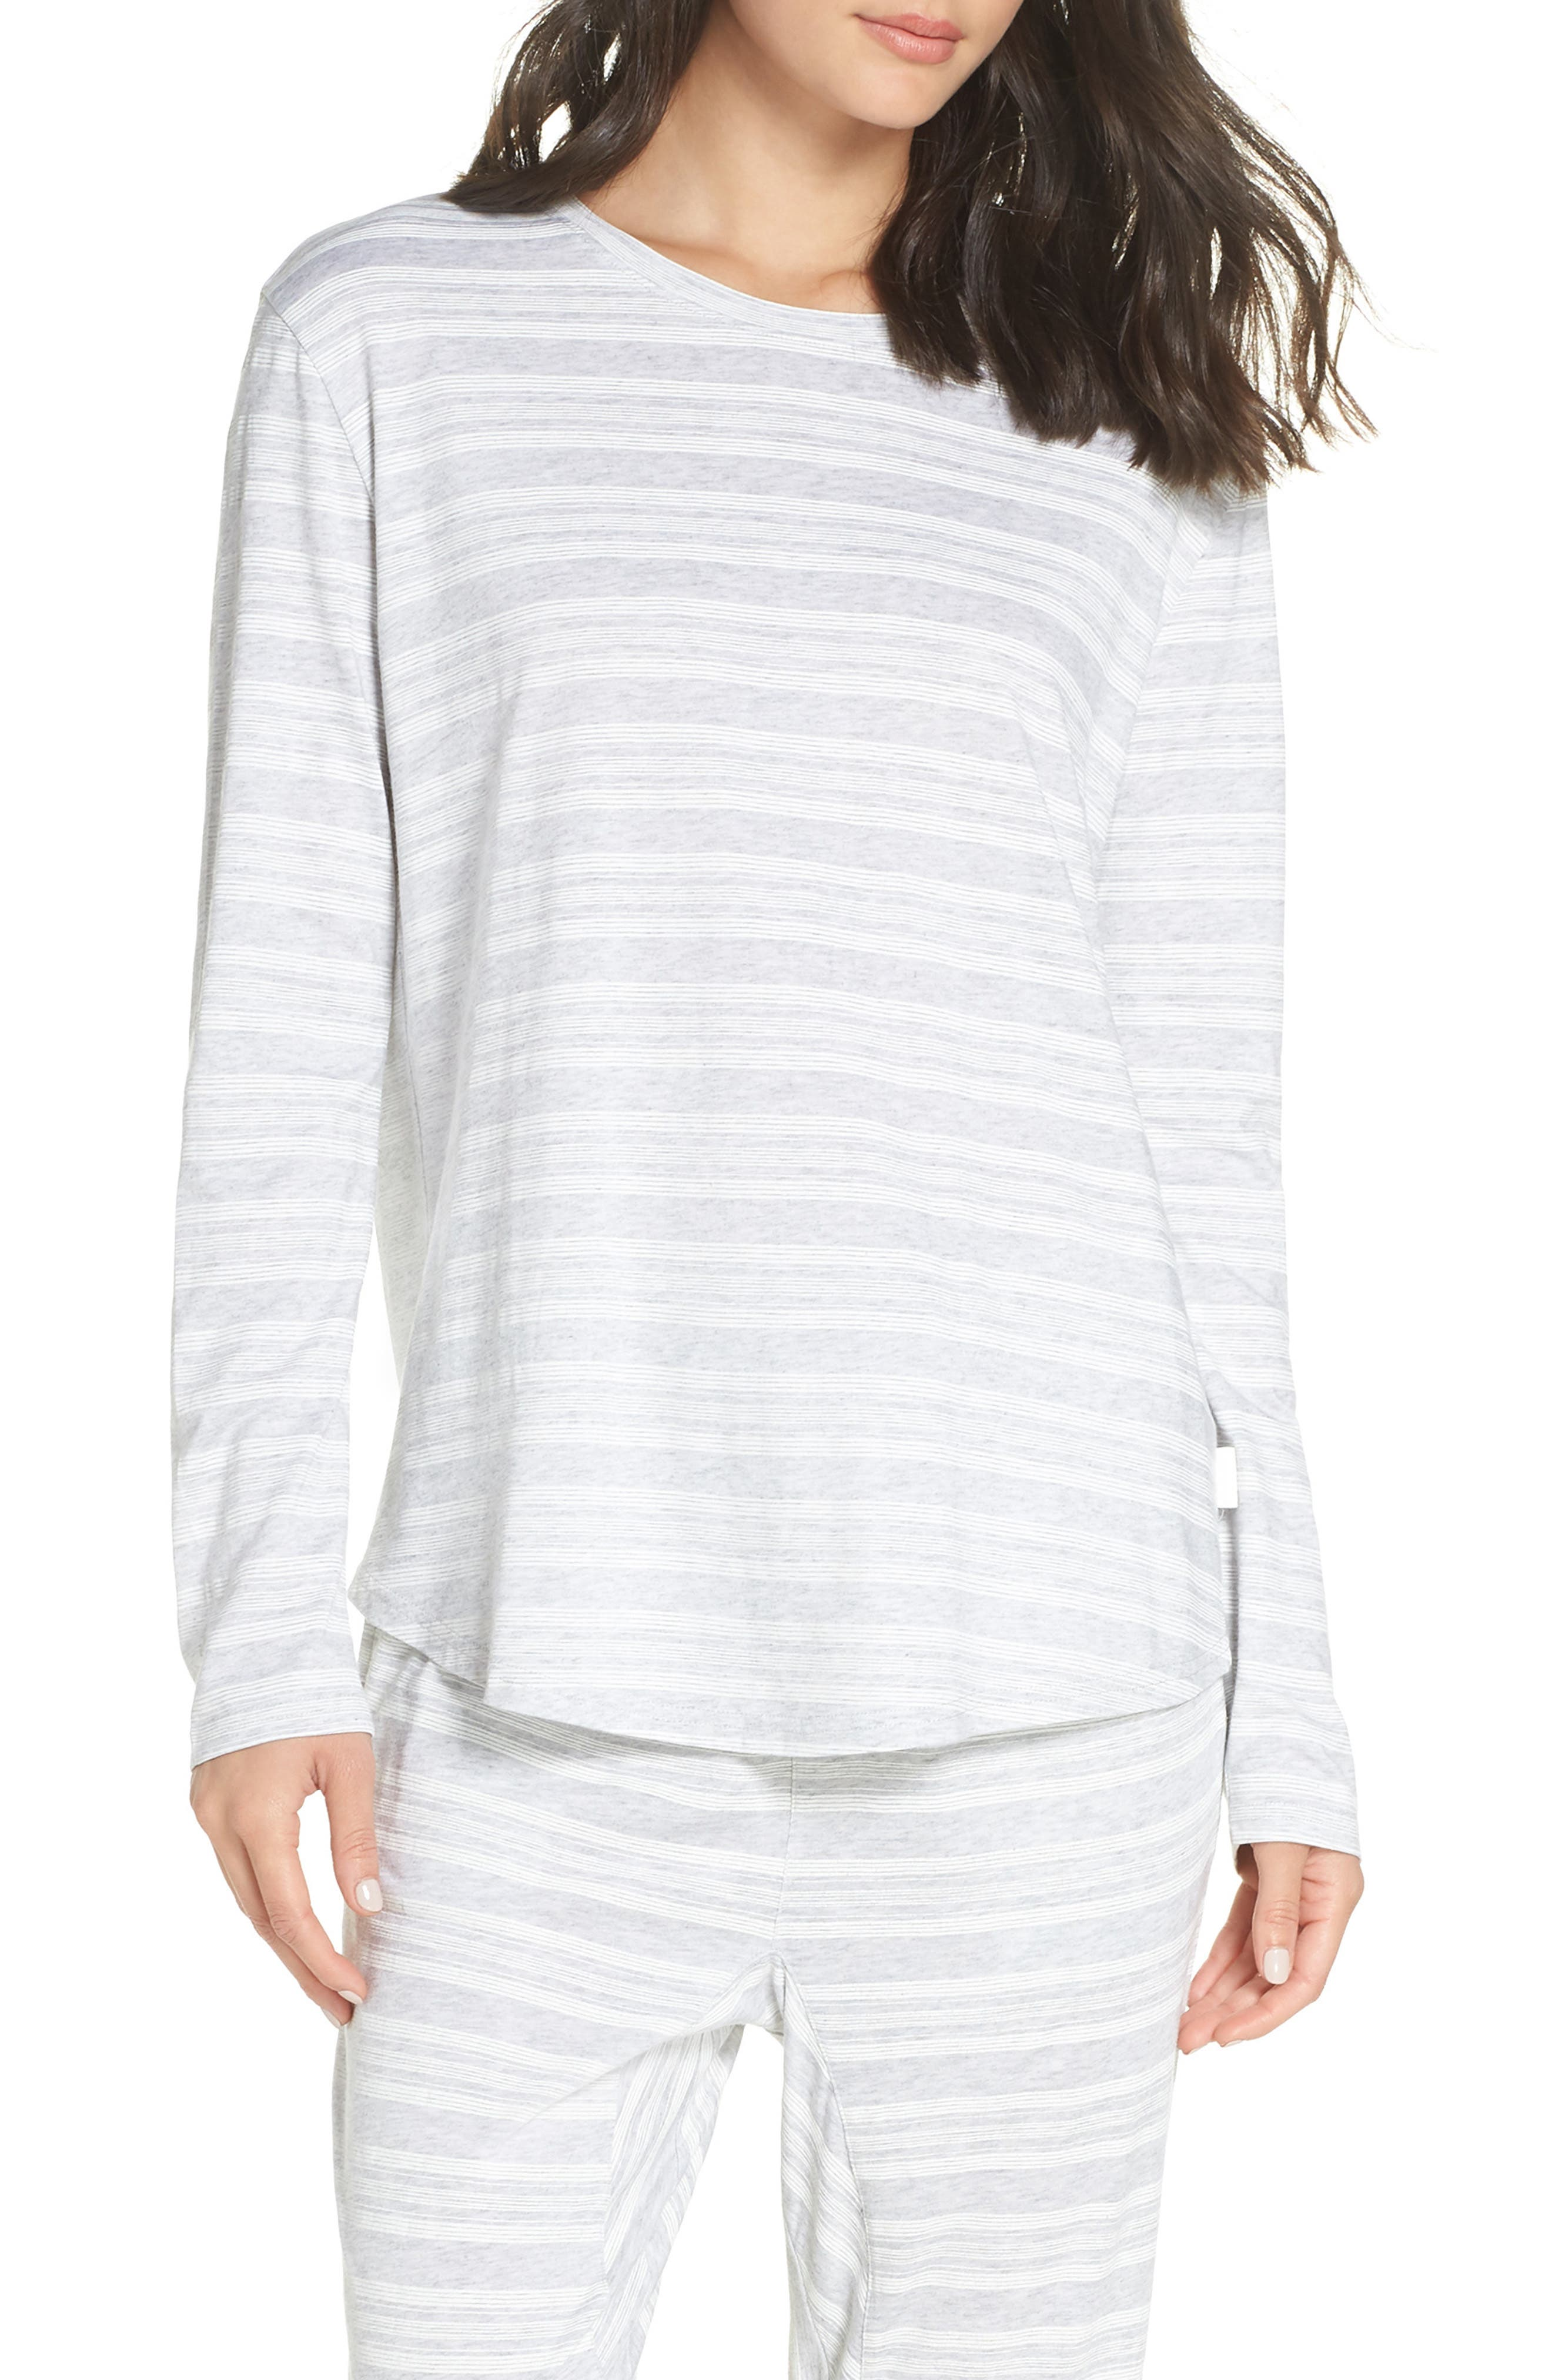 CHALMERS,                             Issy Pajama Top,                             Main thumbnail 1, color,                             LOLLY STRIPE WHITE